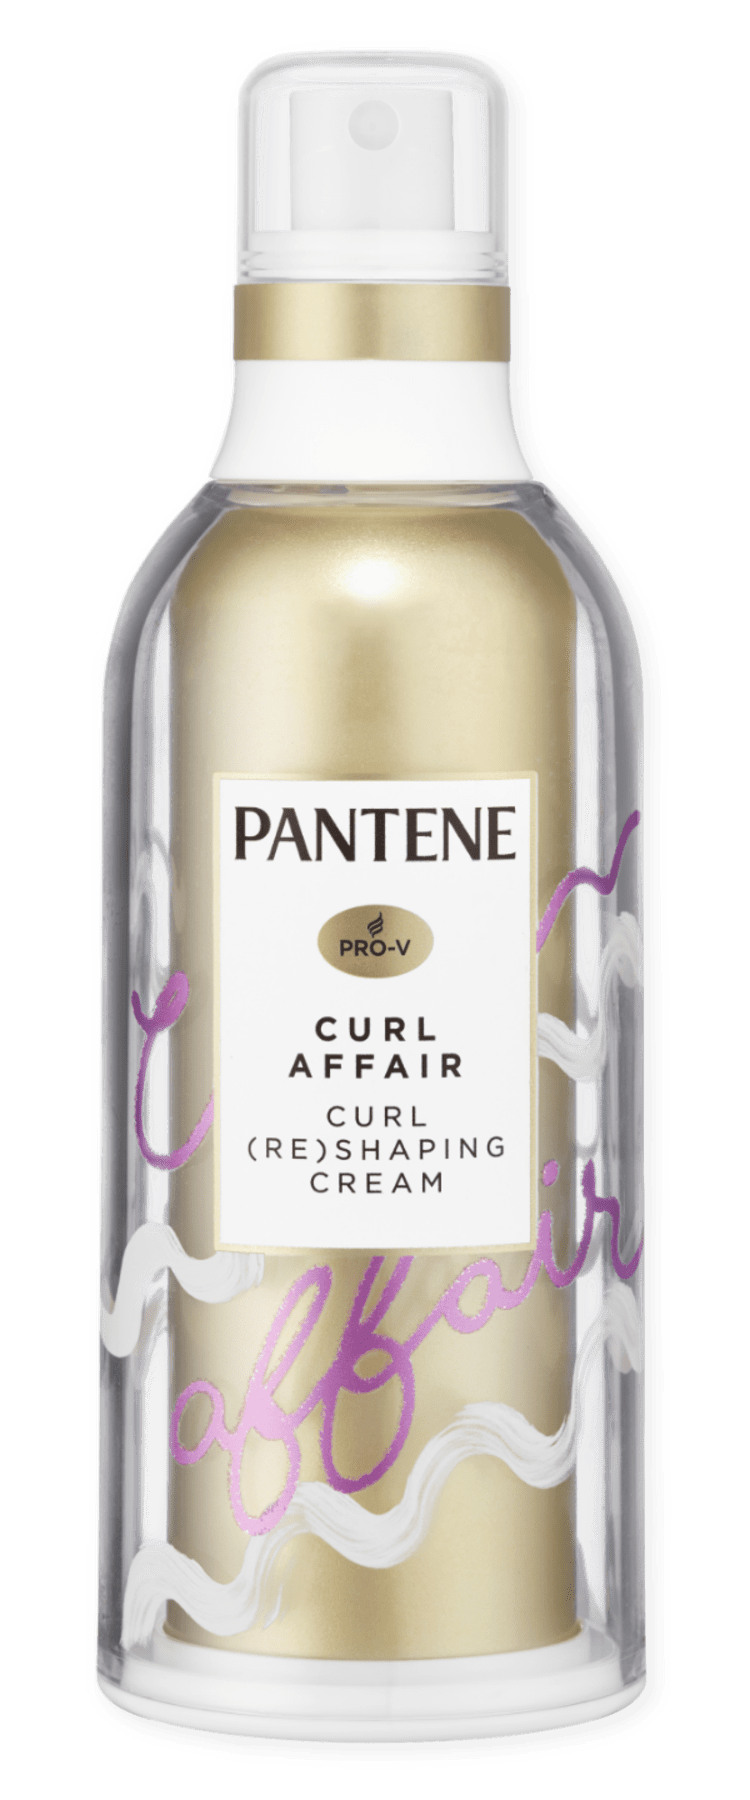 Pantene Curl Affair Curl Re Shaping Cream 2x